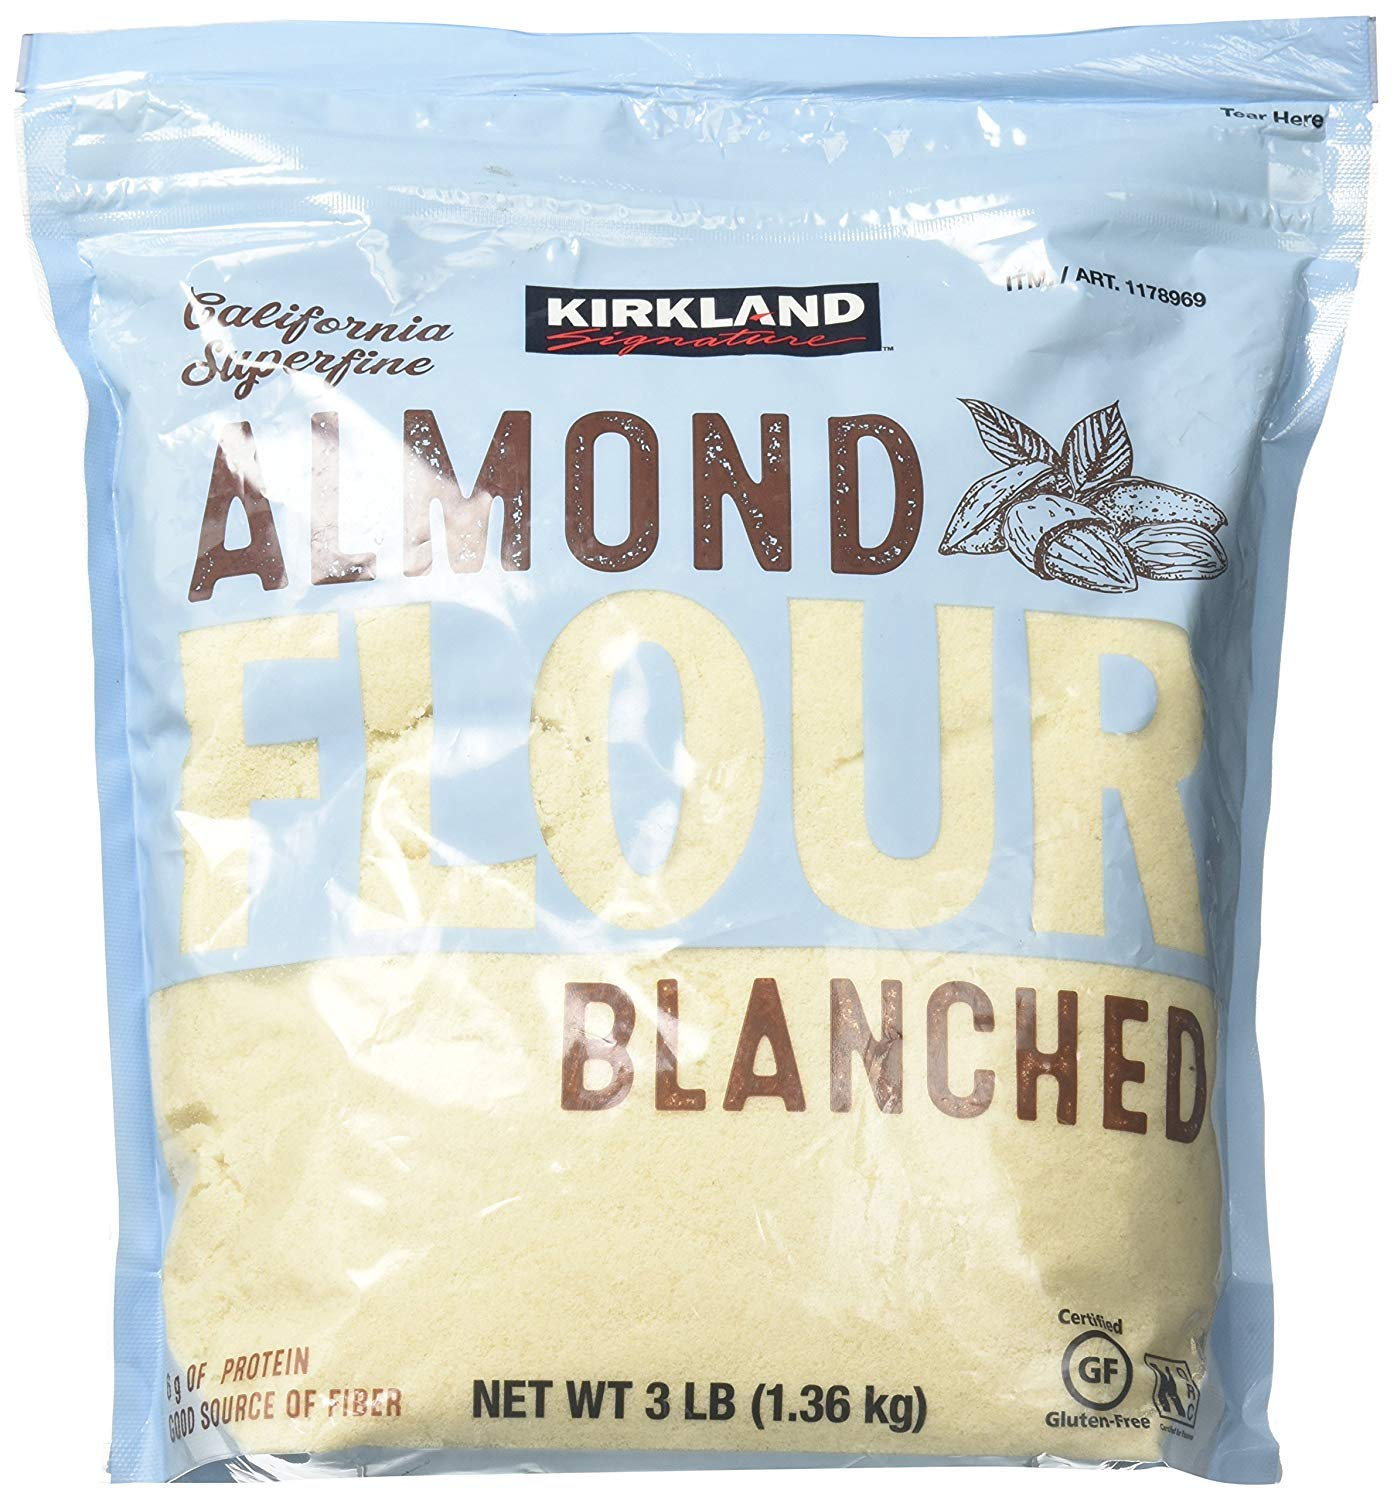 Kirkland Signature fgdg Almond Flour Blanched California Superfine, 3 Pounds - 2 Pack by Kirkland Signature (Image #1)